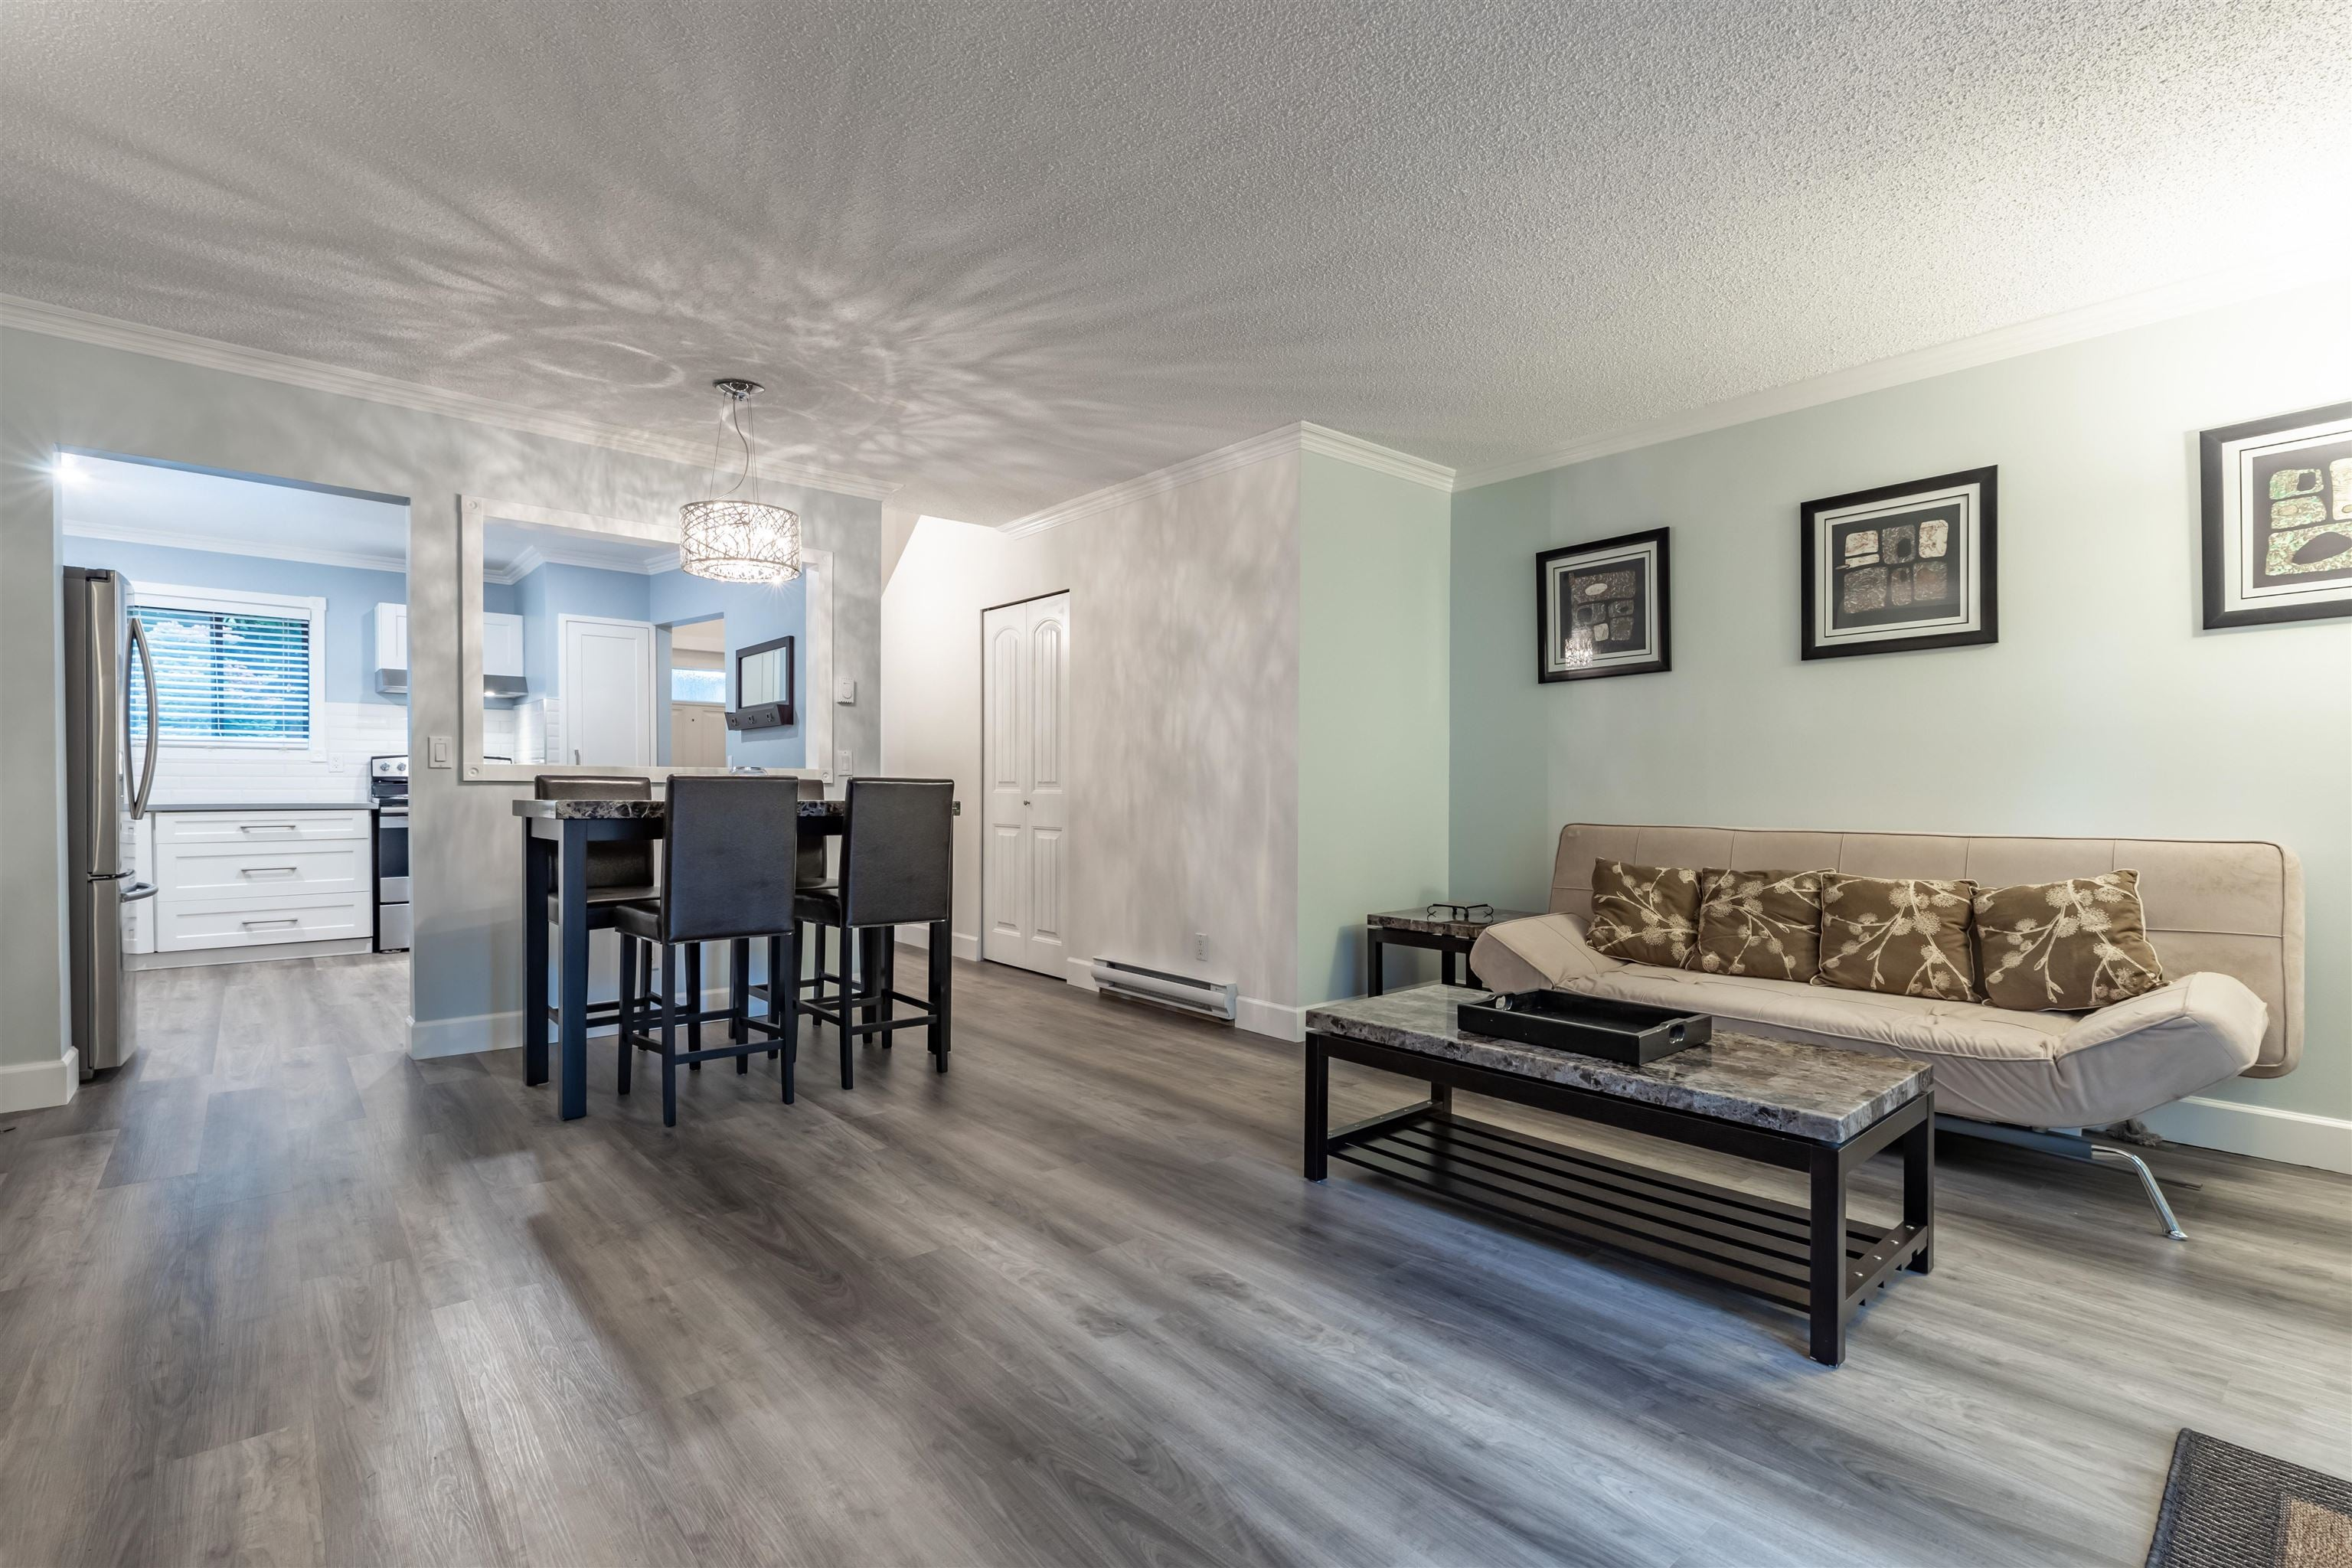 107 13726 67 AVENUE - East Newton Townhouse for sale, 3 Bedrooms (R2616694) - #7